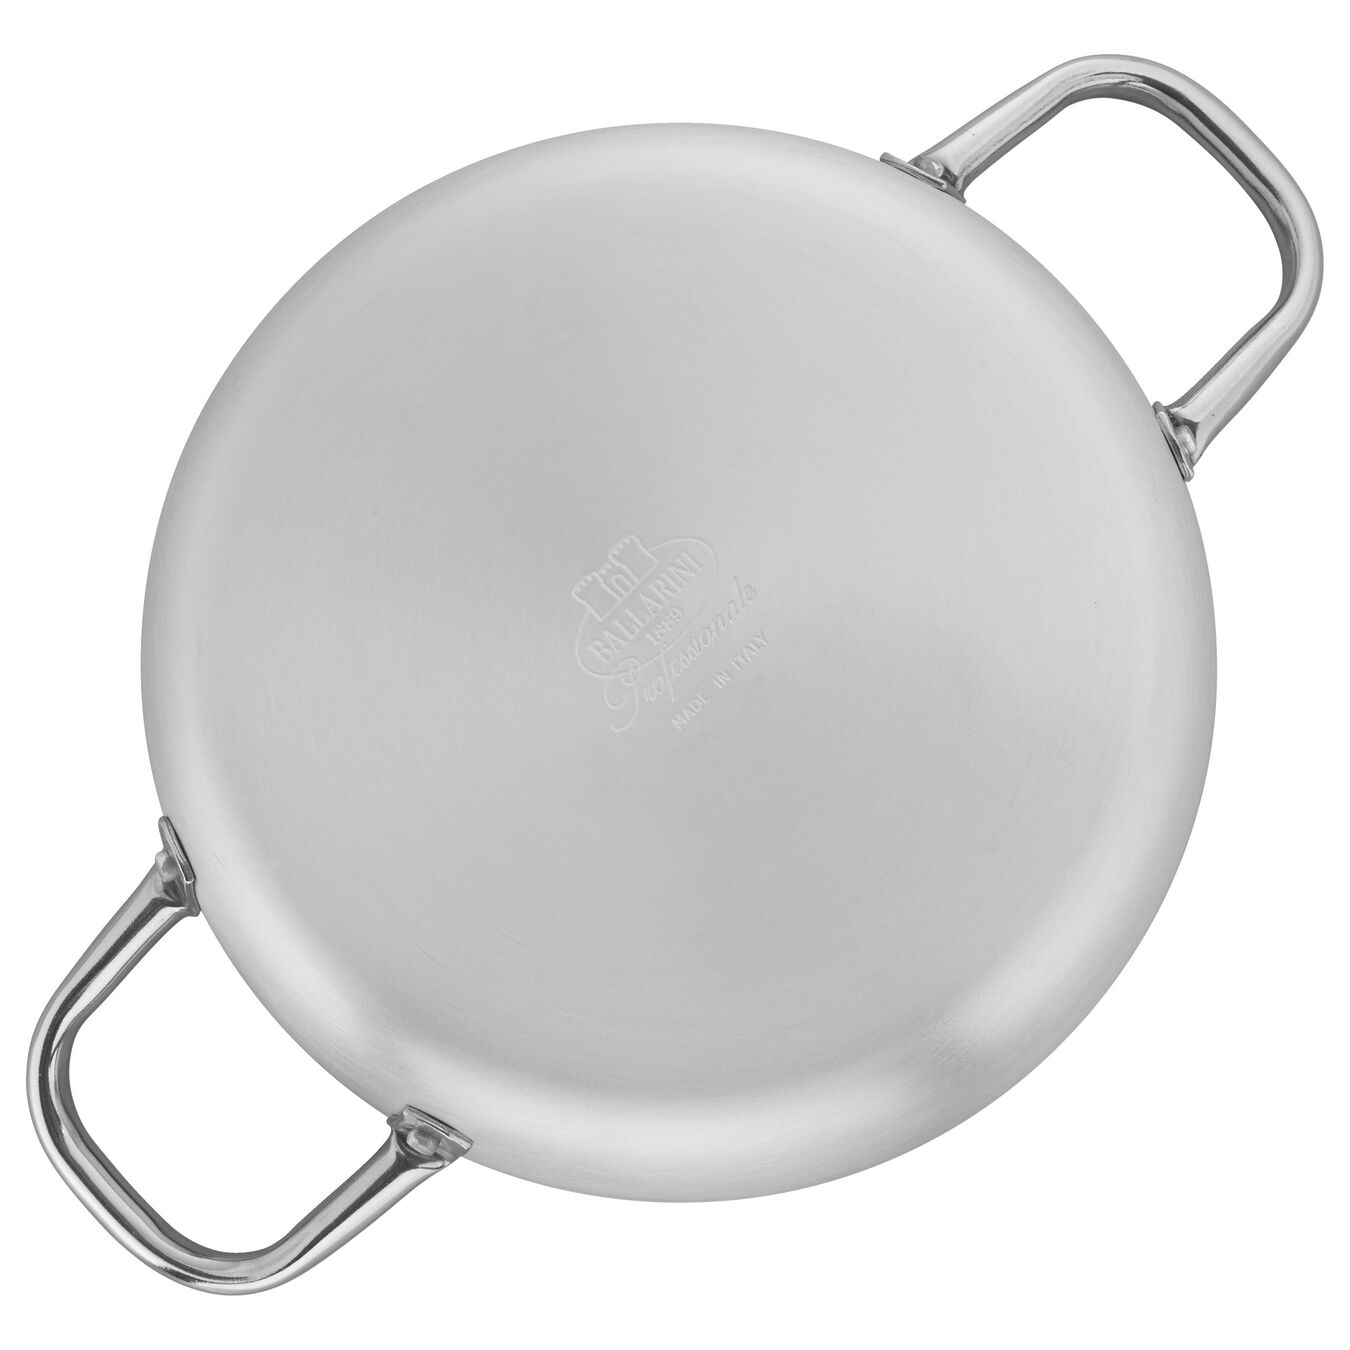 9.5-inch Aluminum Nonstick Braiser Without Lid,,large 3